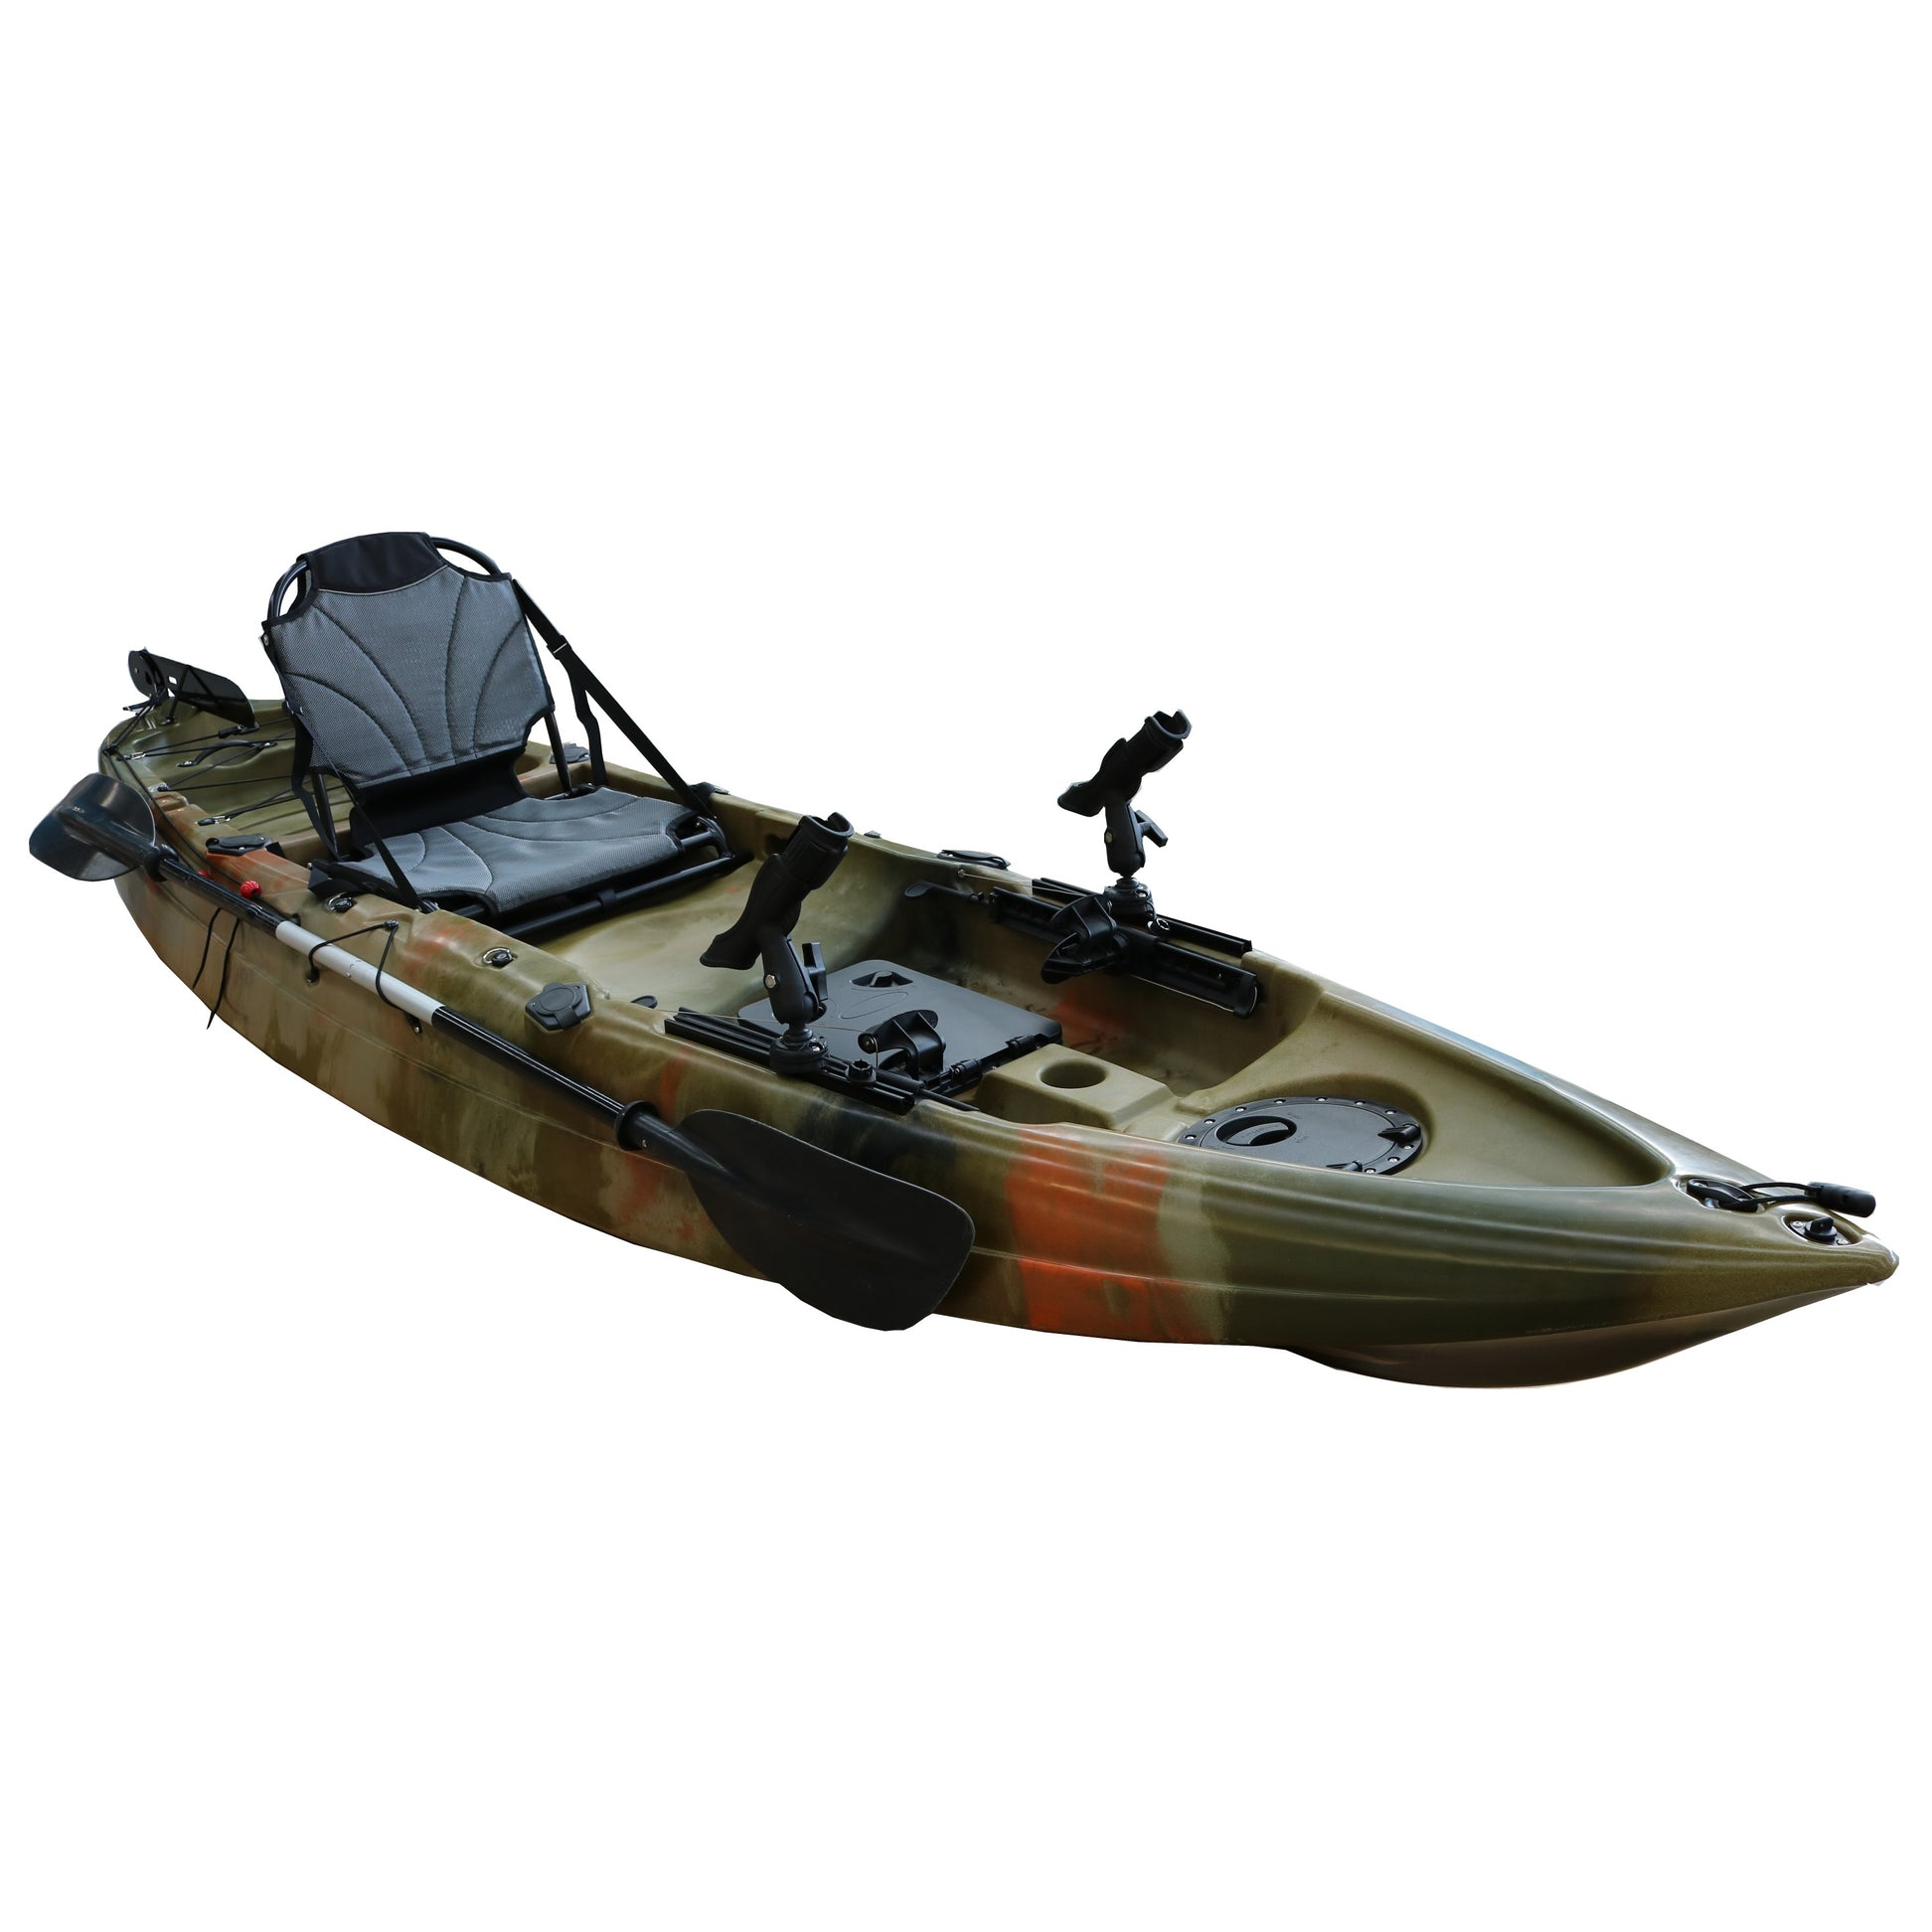 STINGRAY LR | EDDY-GEAR FISHING KAYAK